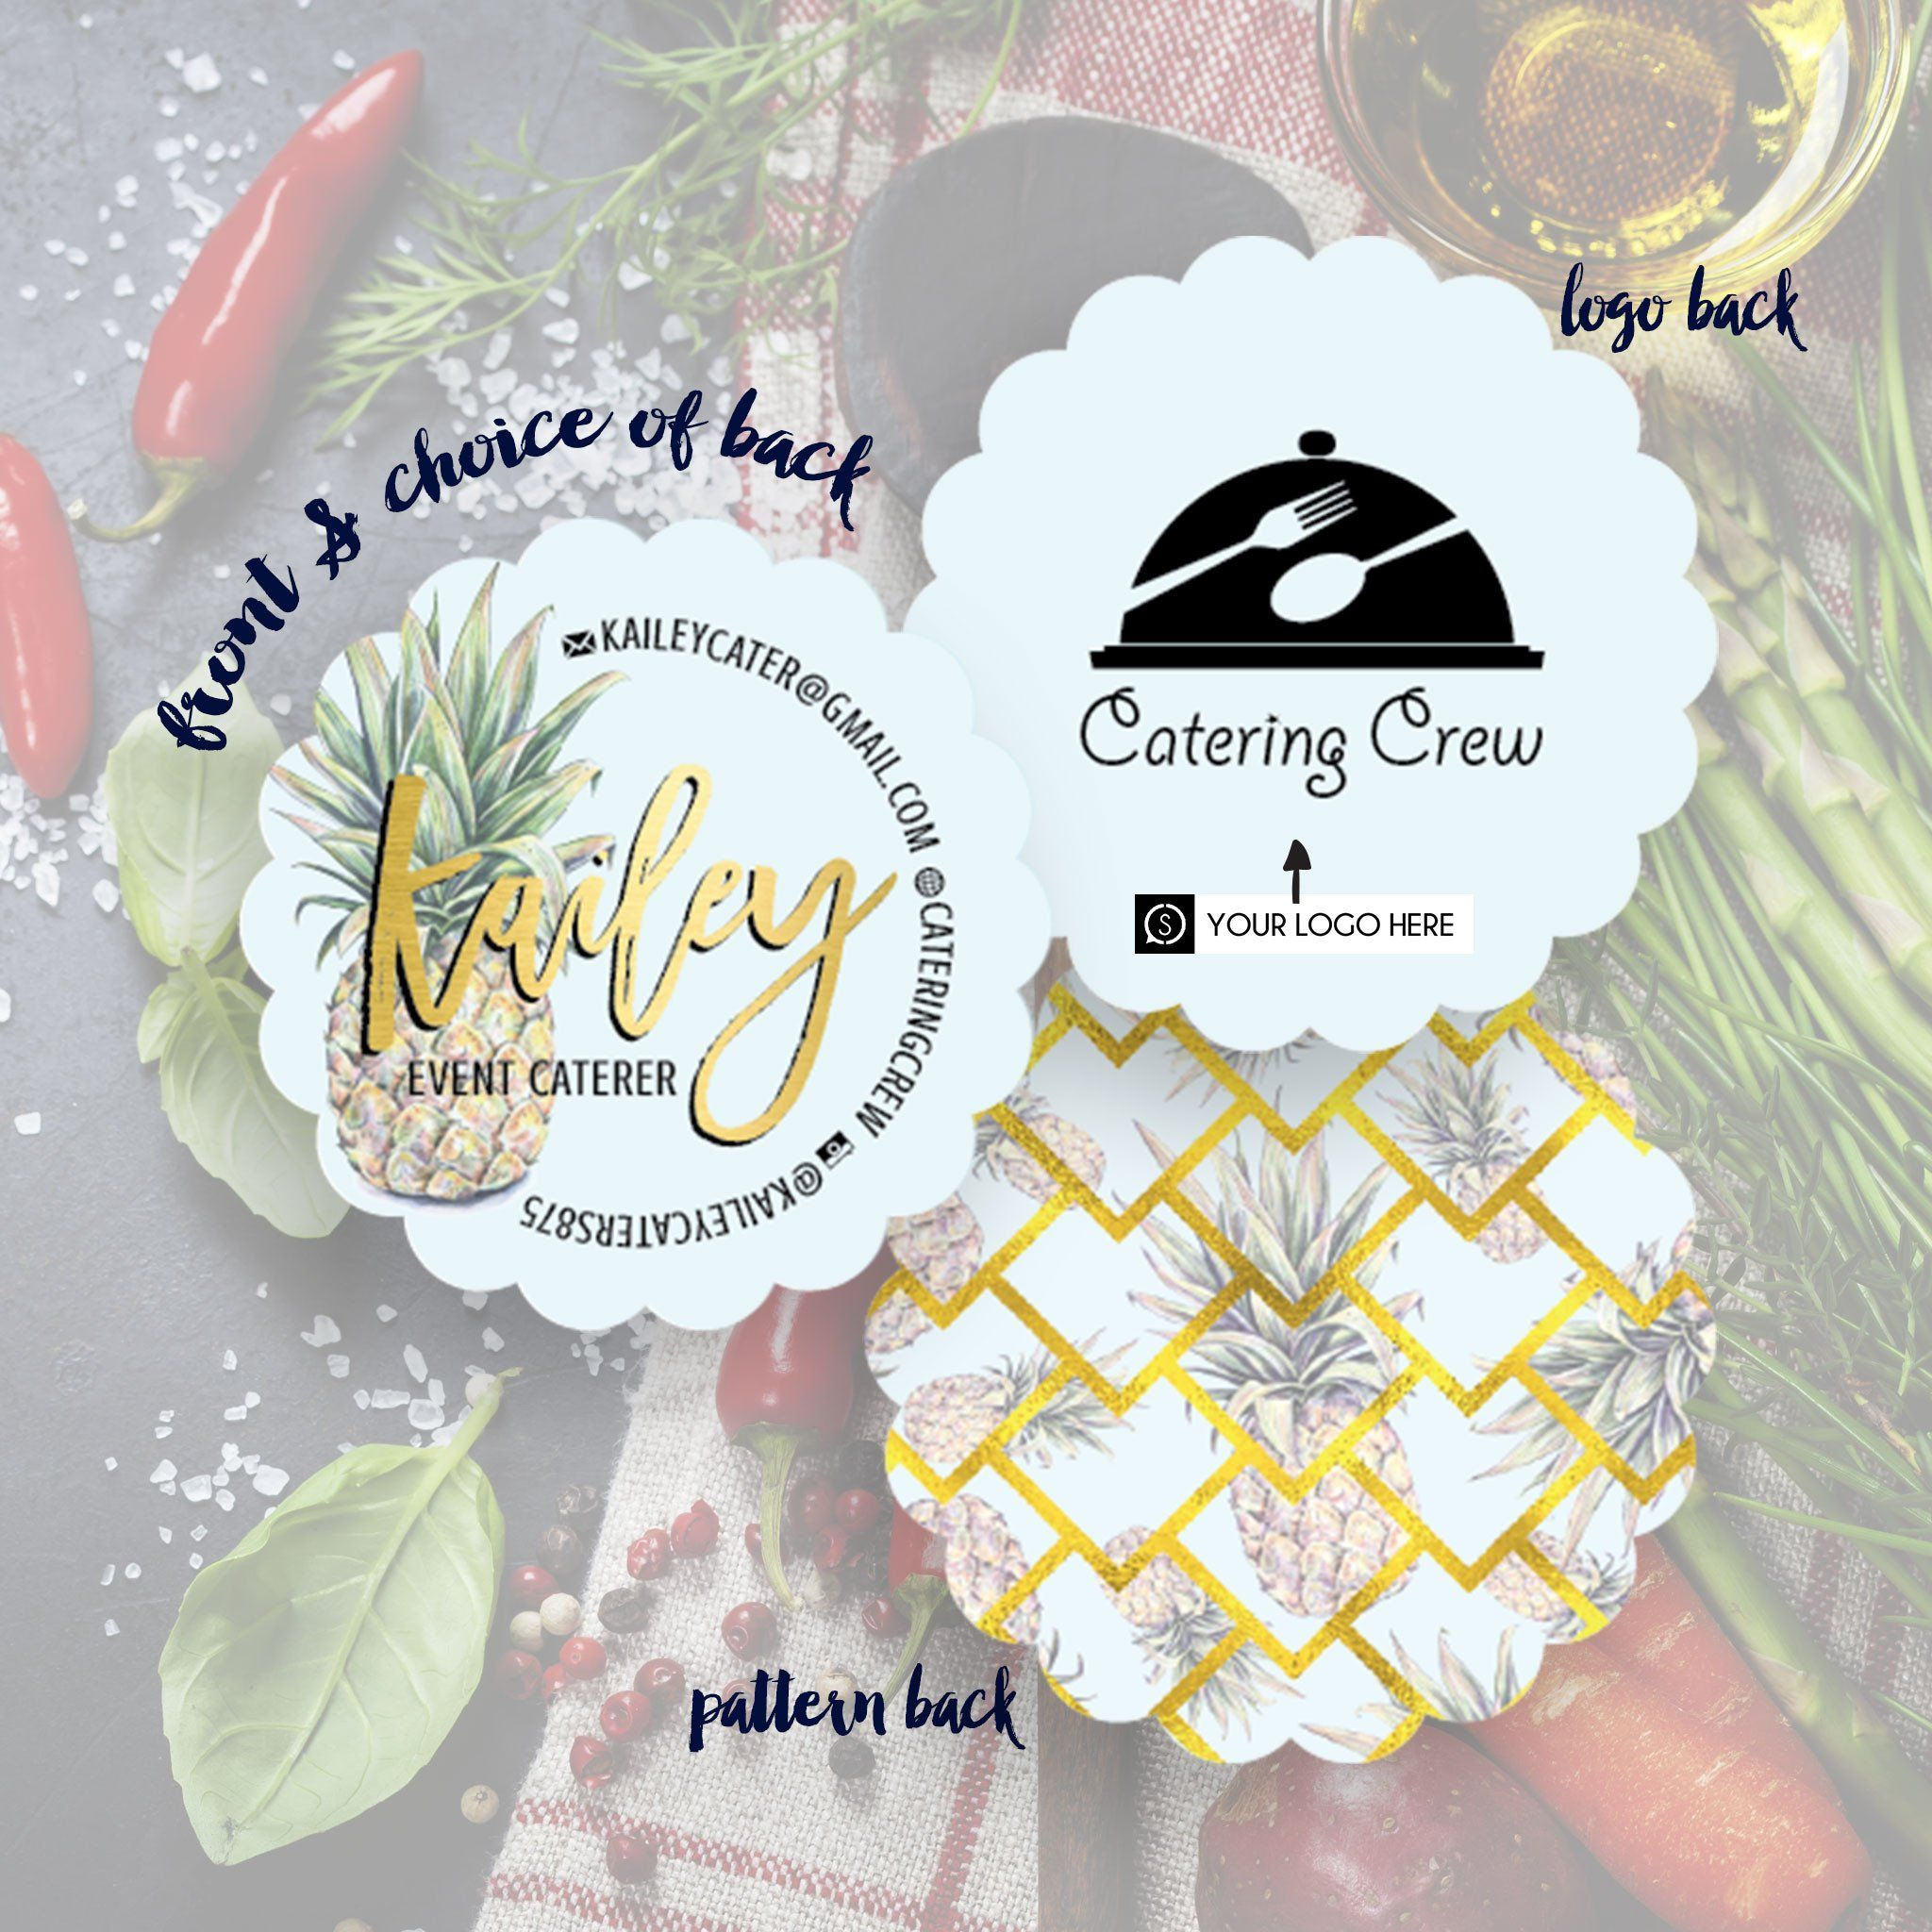 kailey business cards